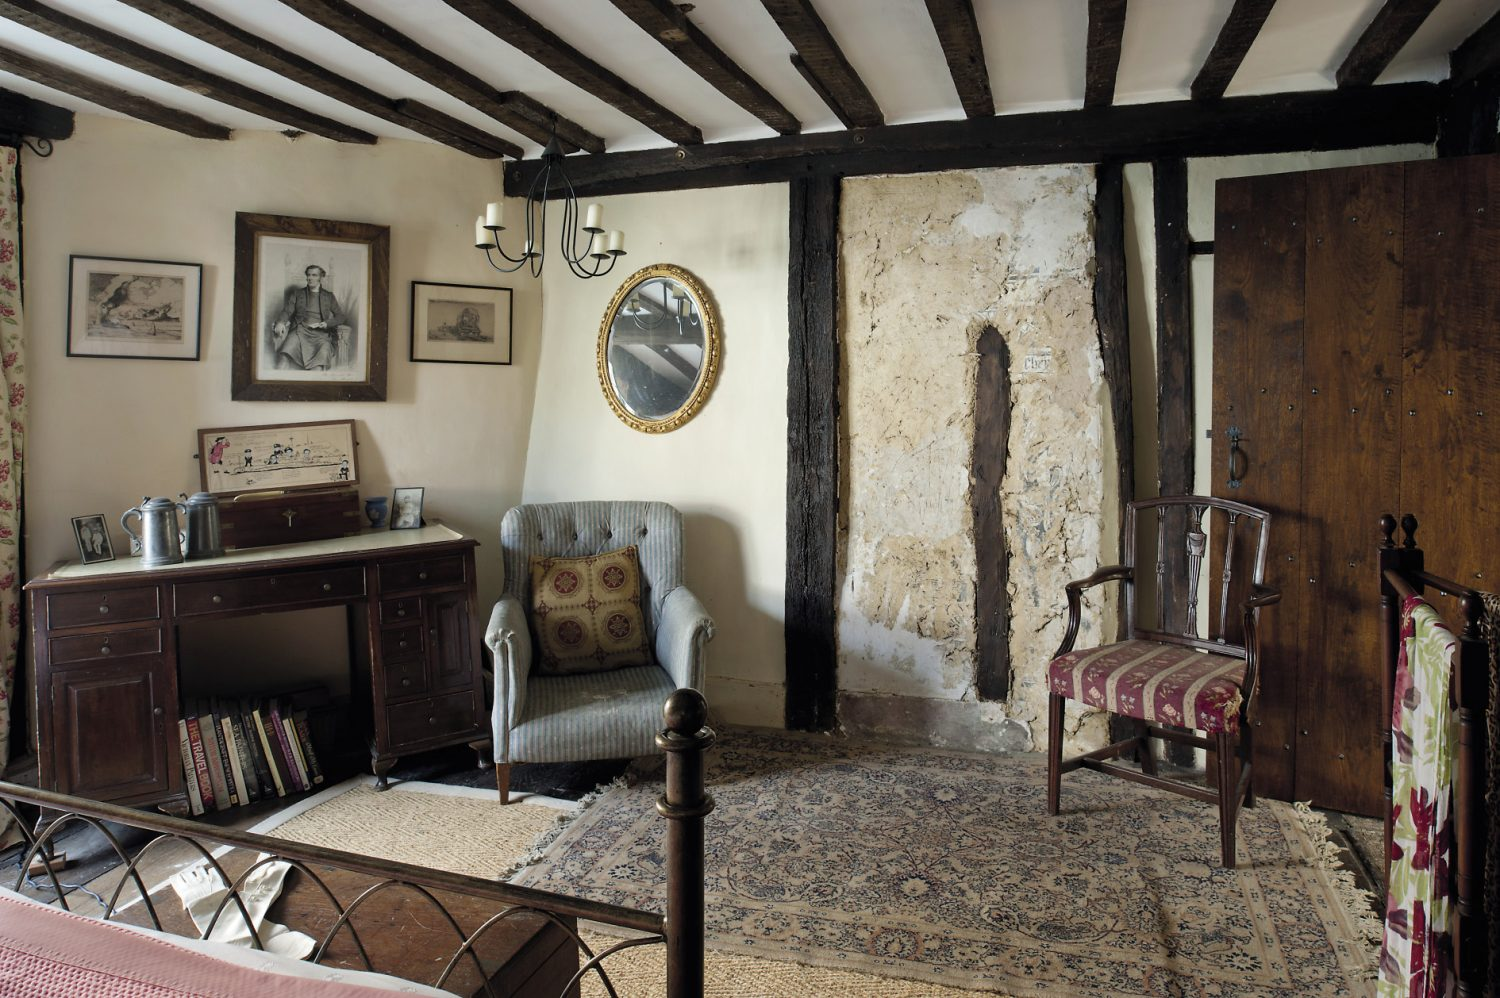 In the guestroom at the front of the house, part of the wallcovering has been scraped away to reveal a panel of pargeting and painting that must date from the 1480s when this house is believed to have been built